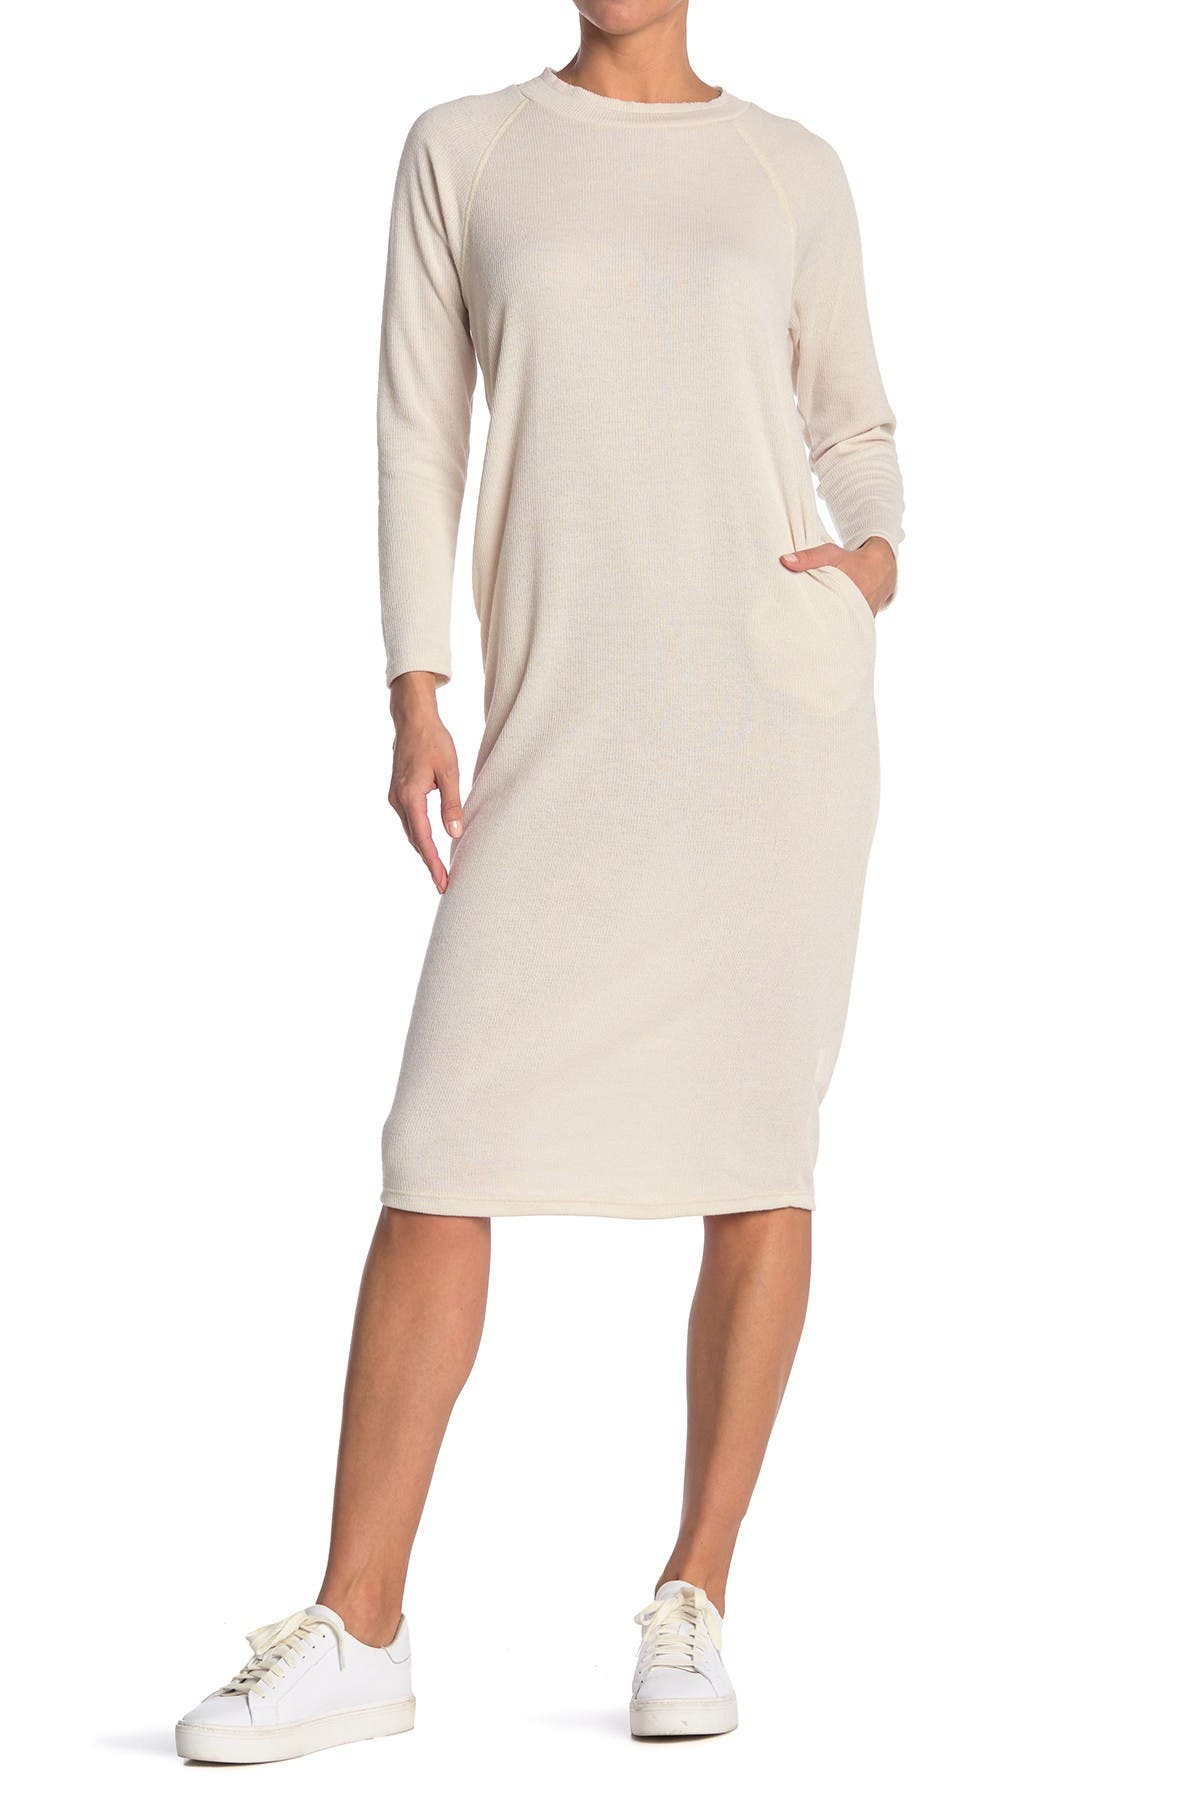 Image of Lush Solid Long Sleeve Knit Dress